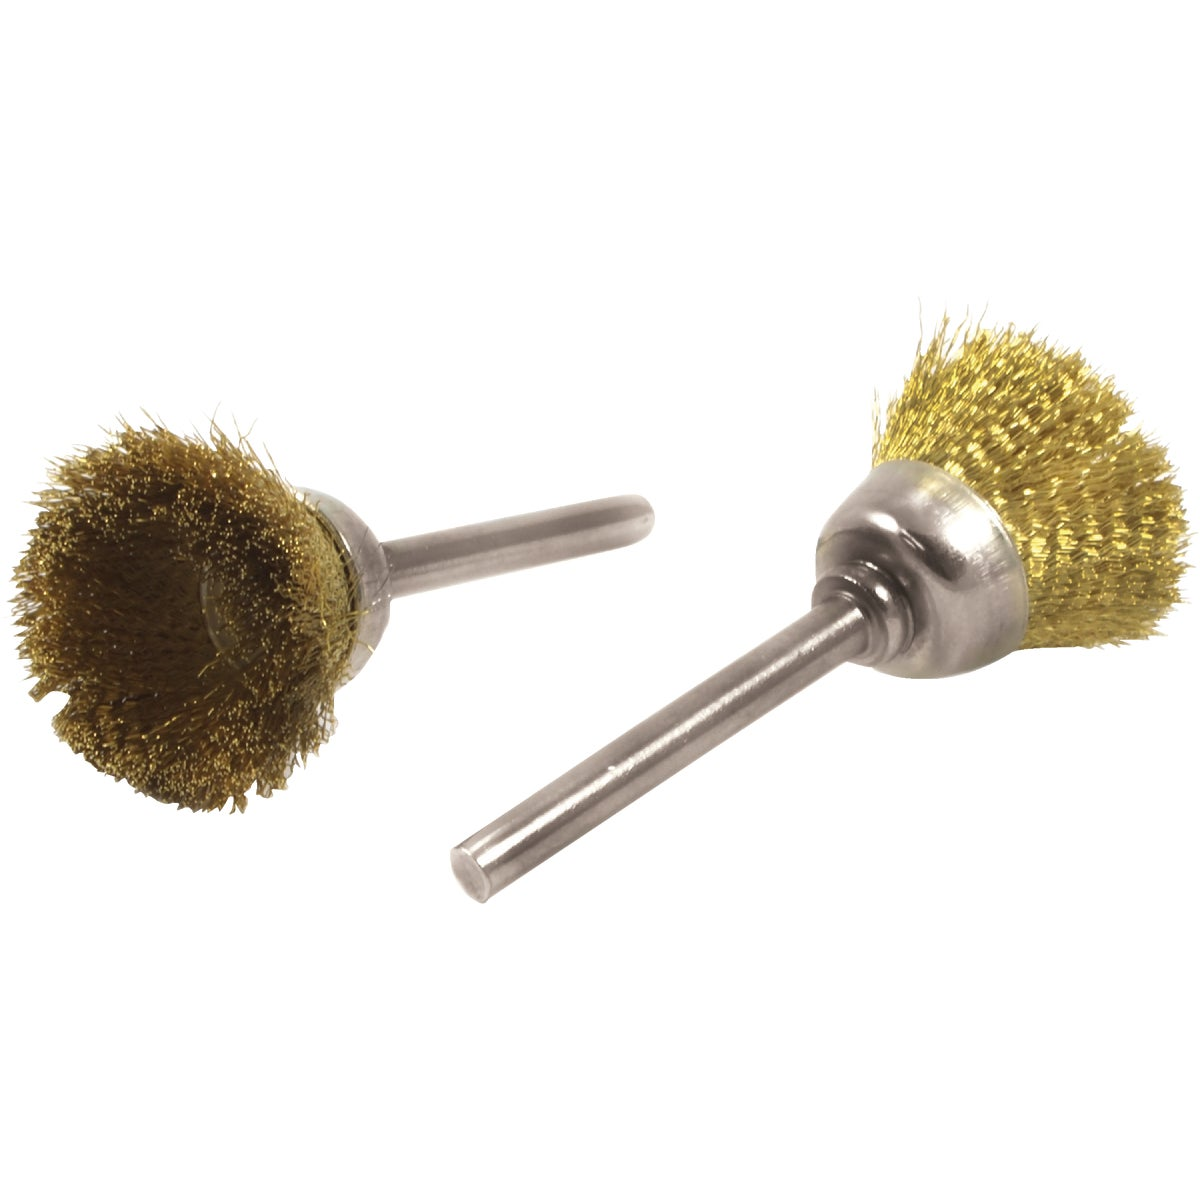 BRASS CUP BRUSH SET